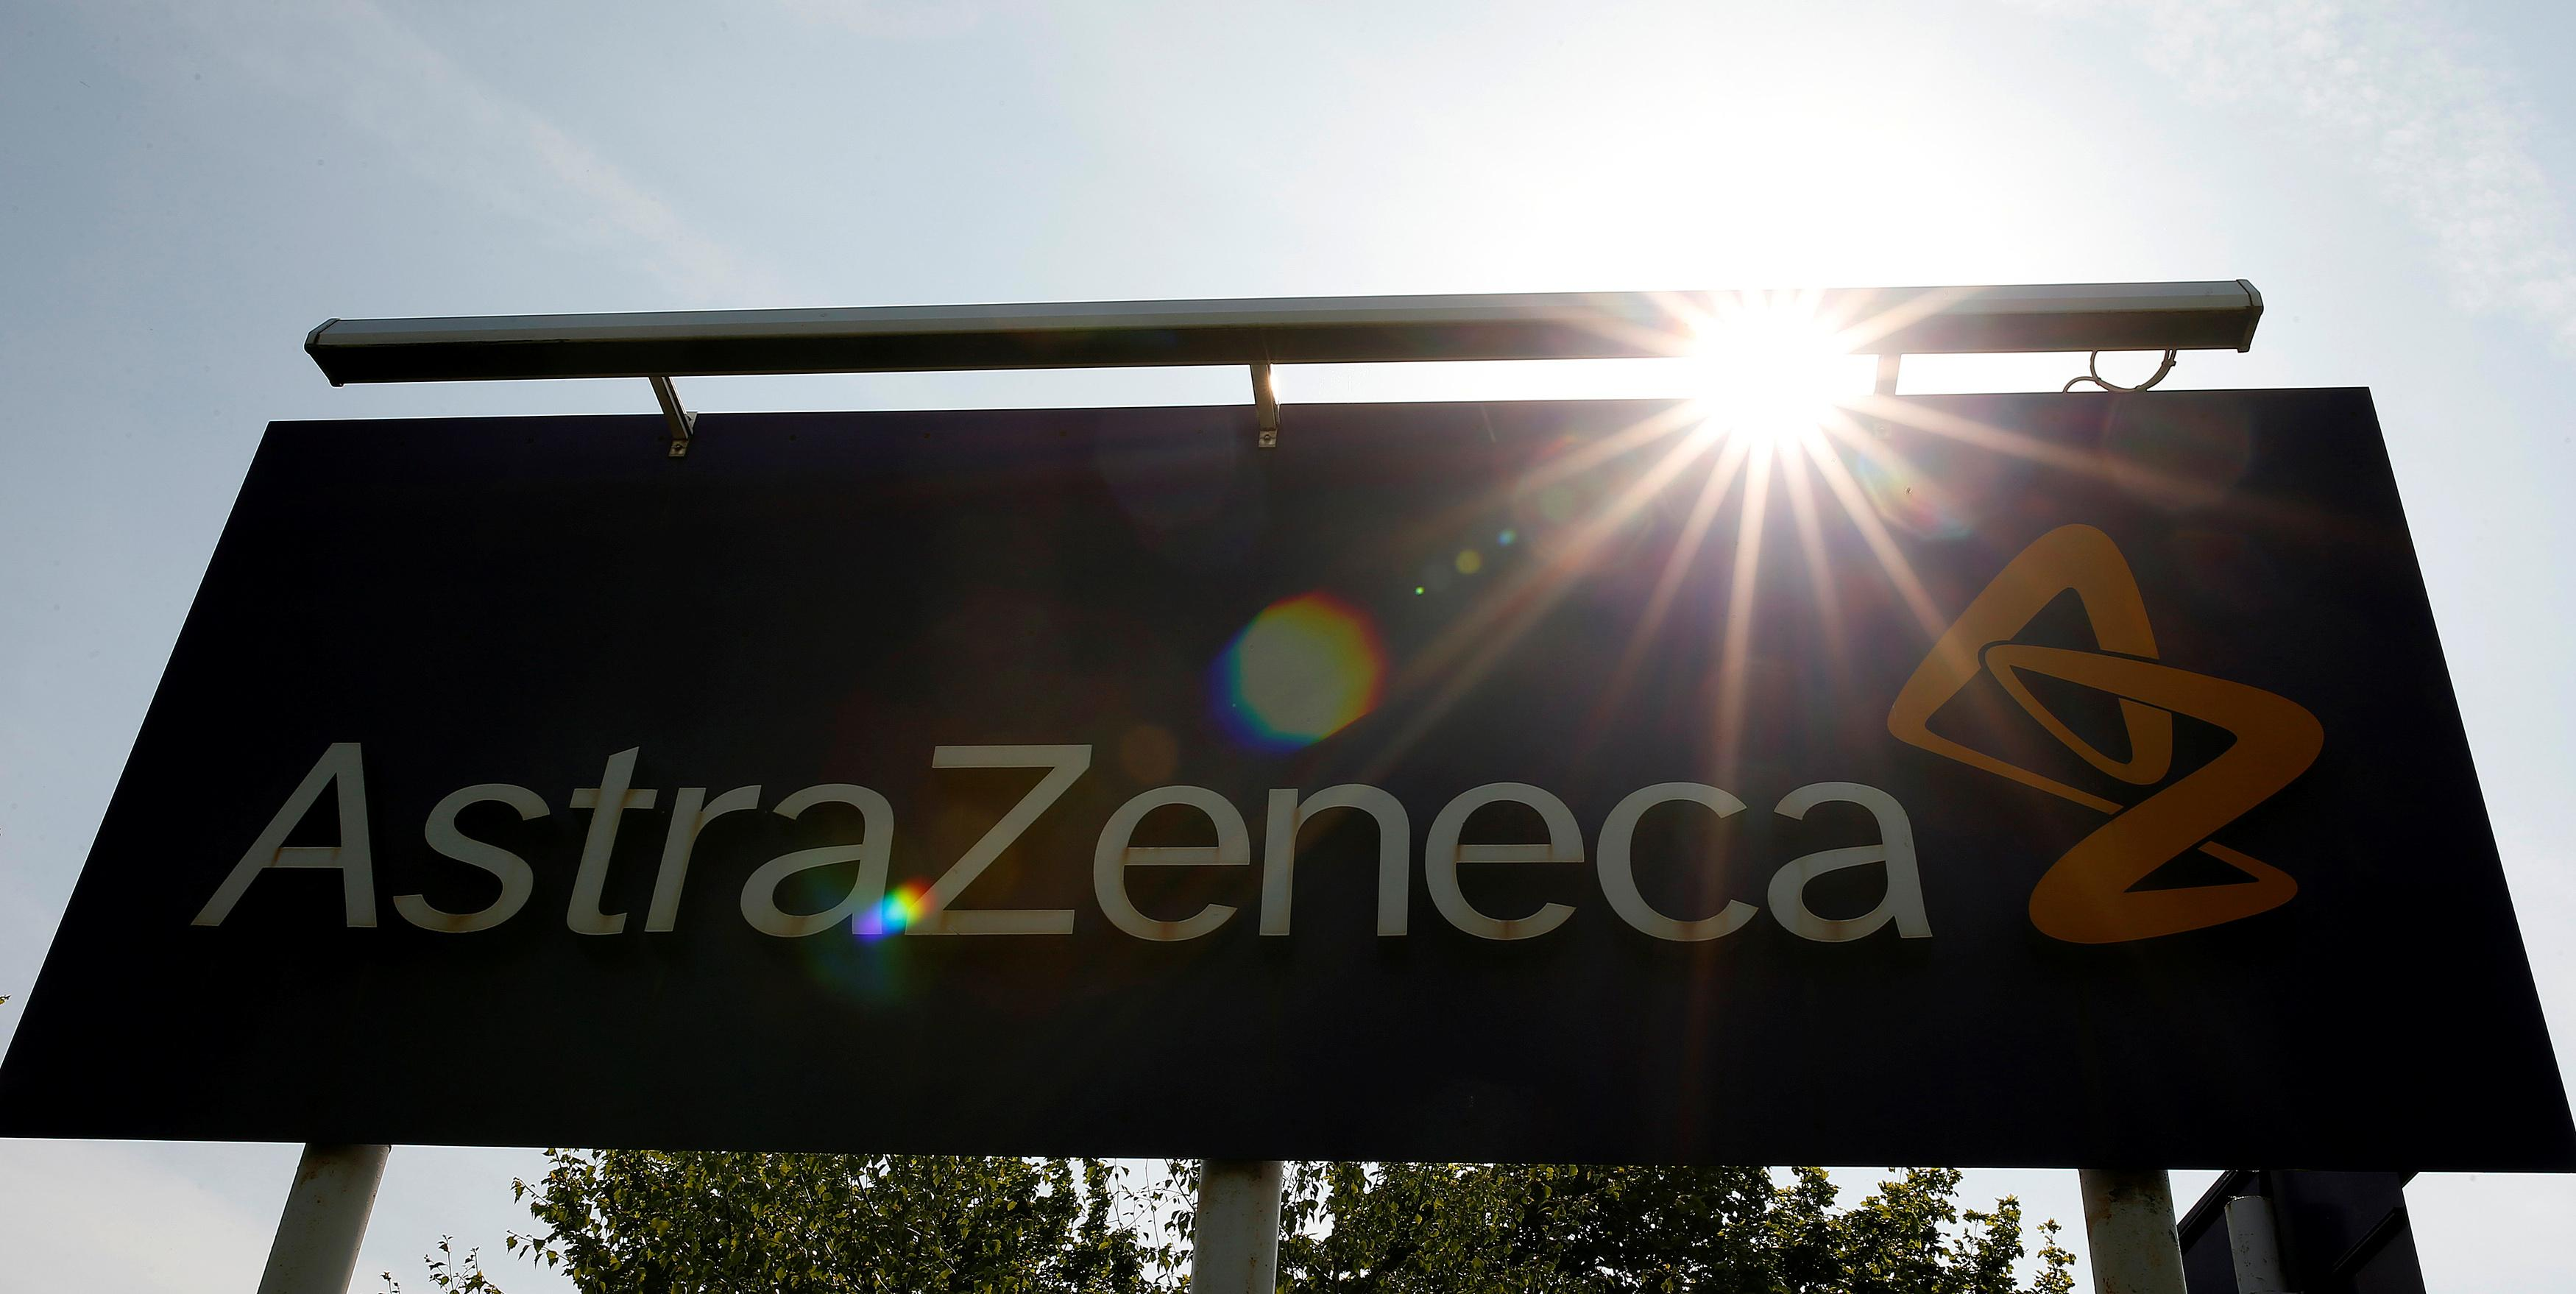 Factbox: Scientists, drugmakers and traders react to AstraZeneca's COVID-19 vaccine trial pause